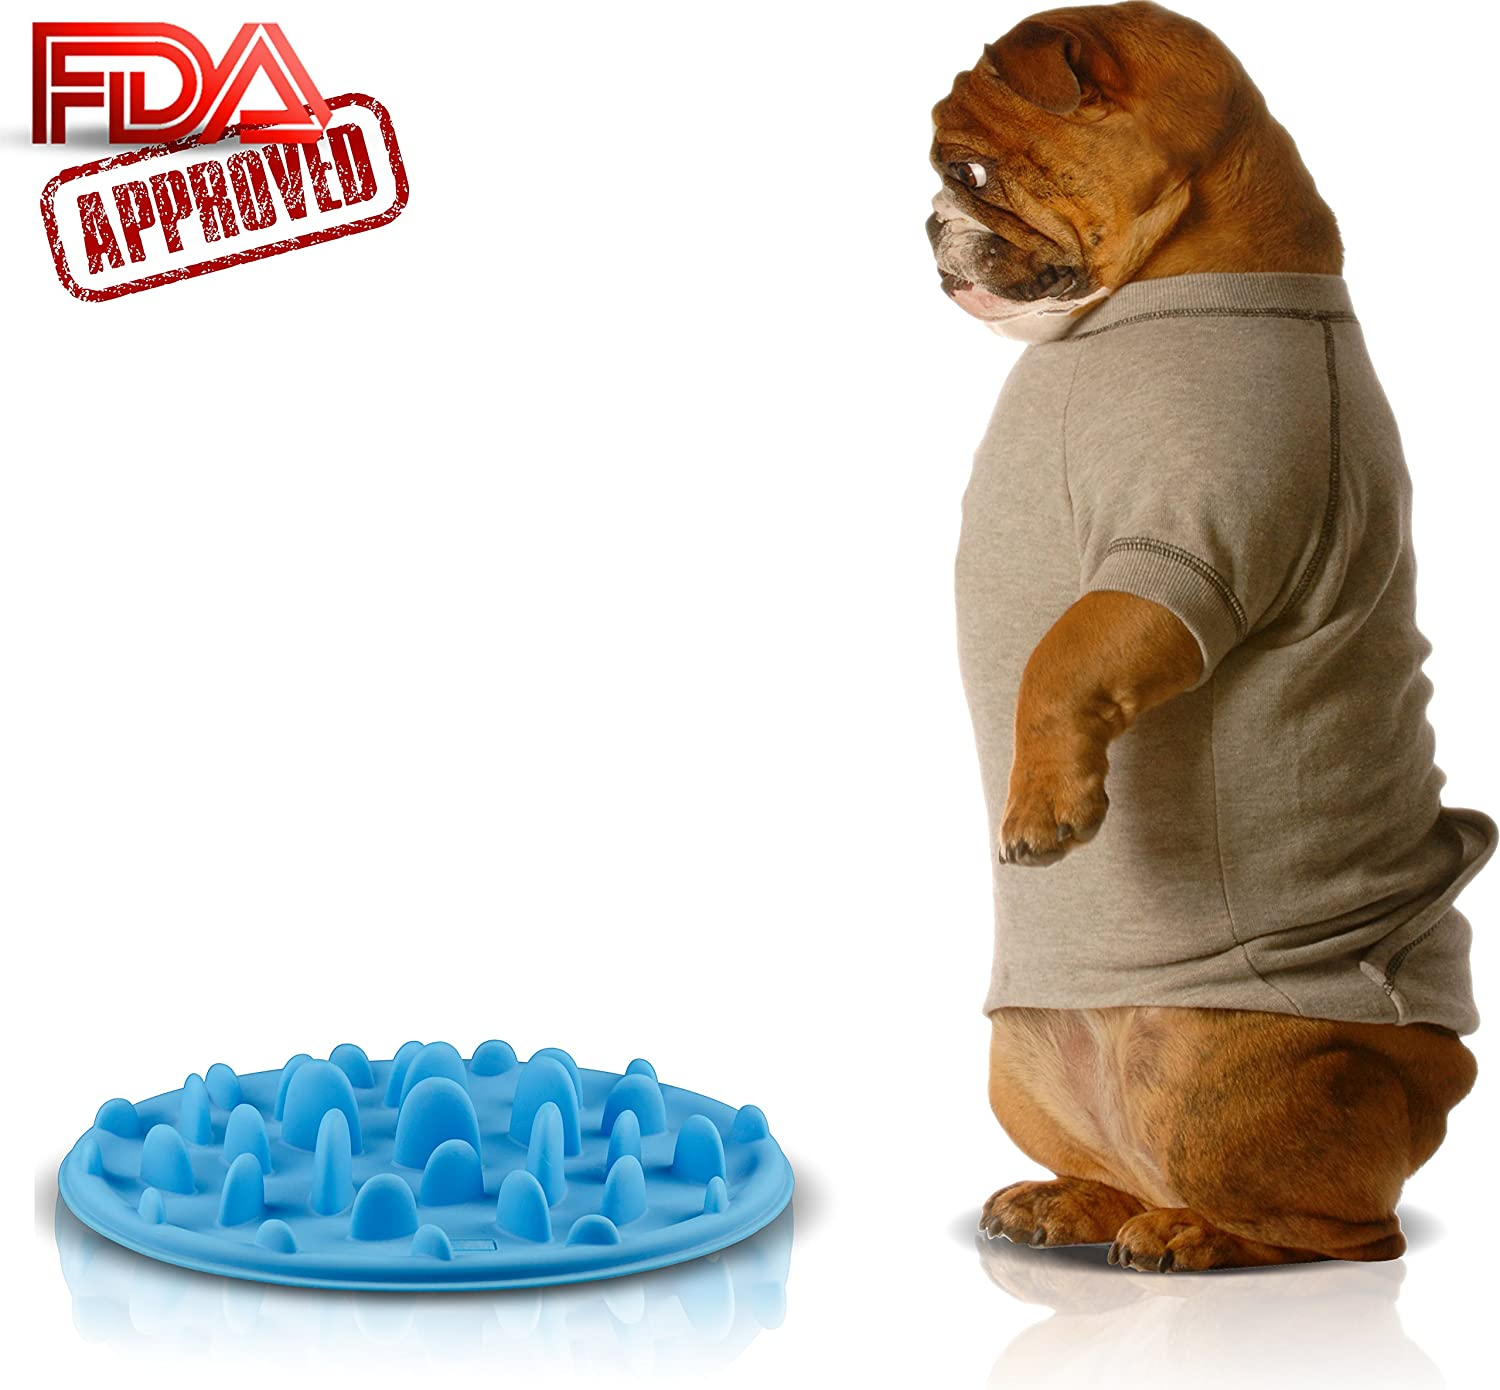 feed best simply feeder supergrail in bowls dog feeders online bowl maze a and pets slow